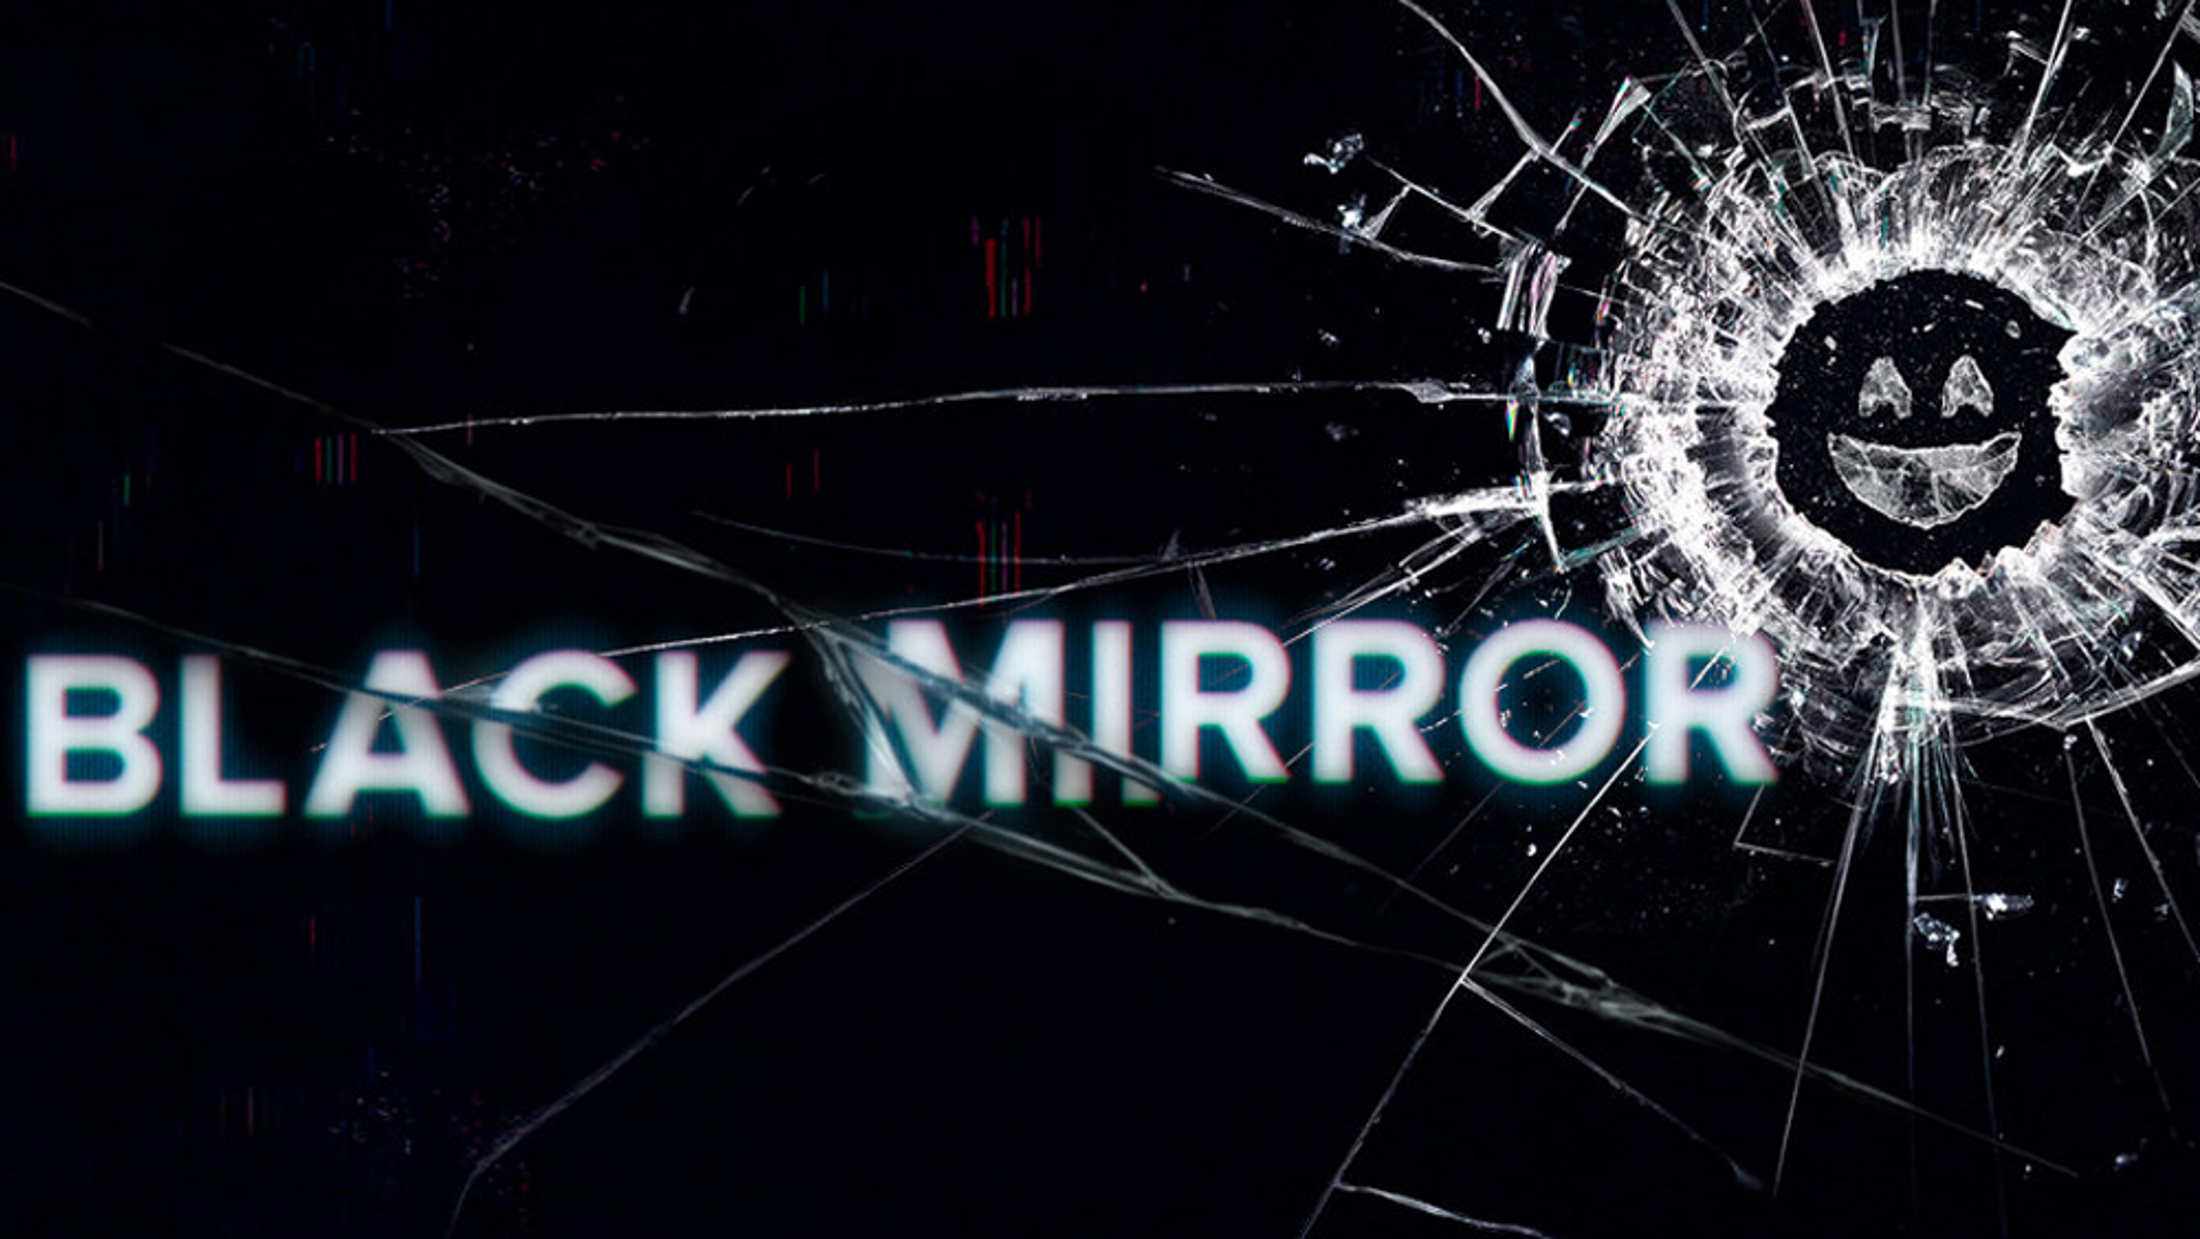 Black Mirror is a huge success for Netflix (Variety)